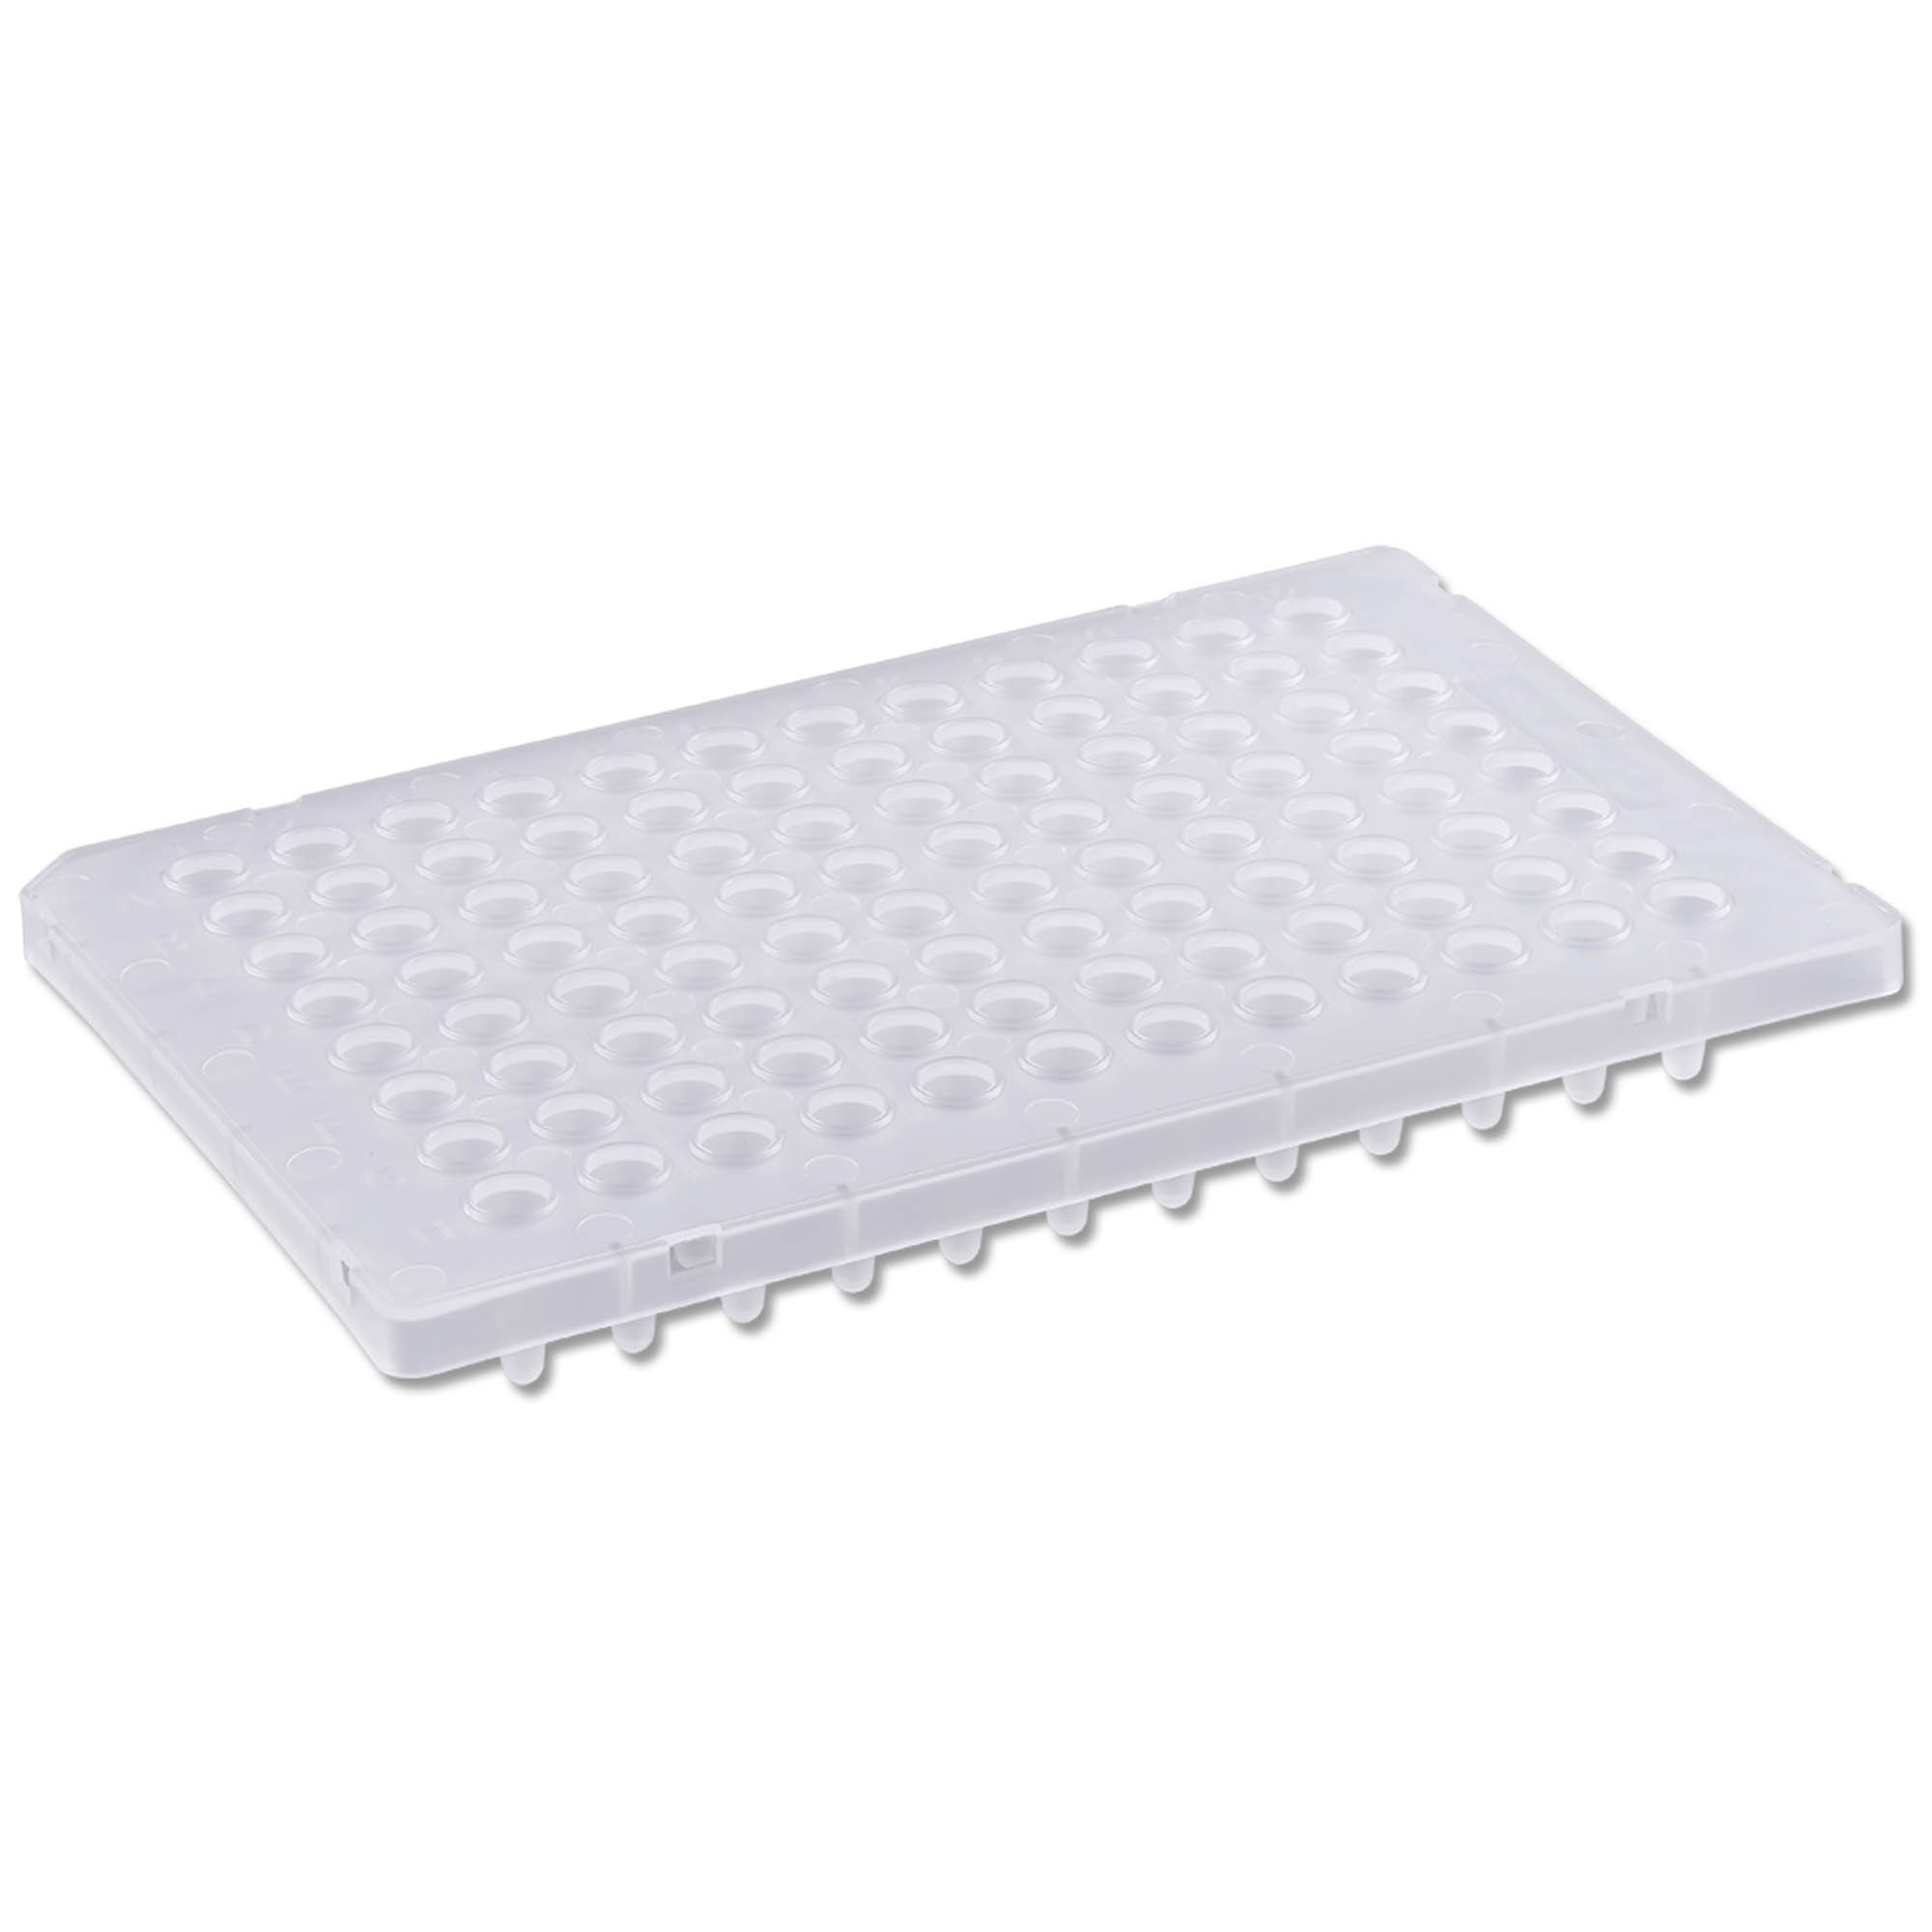 PureAmp Low Profile/Fast 96-Well x 0.1mL PCR Plates - Semi Skirted, Natural (Pack of 50) - ON BACKORDER UNTIL 6/21/2021